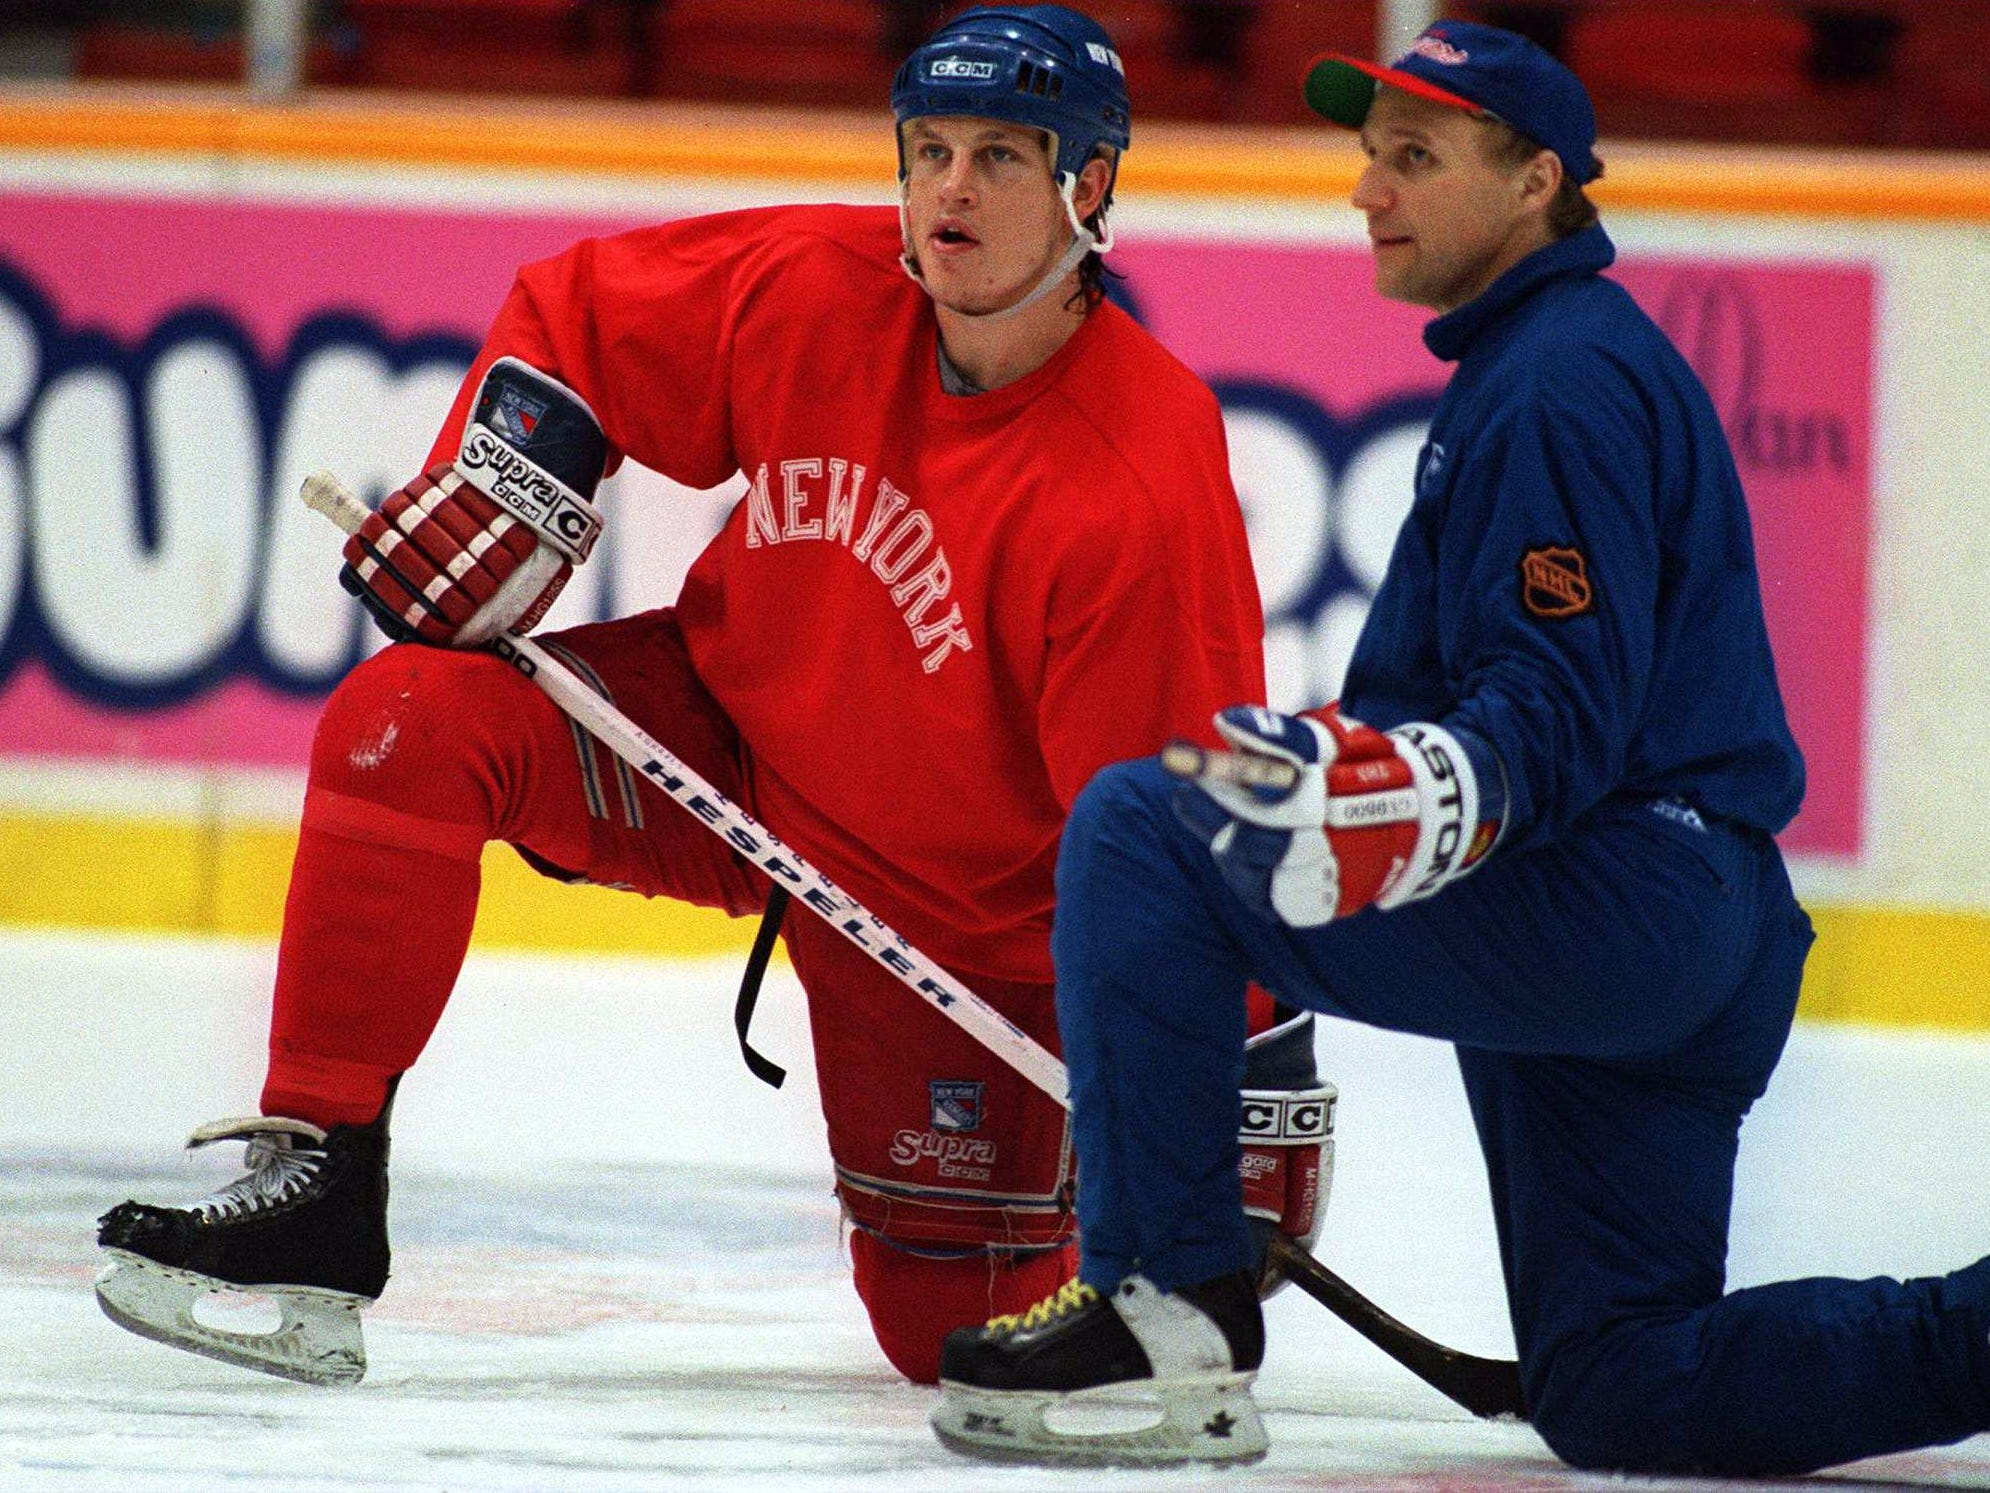 6 Jun 1994: RANGERS FORWARD ADAM GRAVES TALKS WITH ASSOCIATE COACH COLIN CAMPBELL DURING TEAM WORKOUTS AT THE PACIFIC COLESIUM IN VANCOUVER, BRITISH COLUMBIA. THE RANGERS TAKE THEIR 2-1 SERIES LEAD OVER THE CANUCKS INTO GAME FOUR TOMORROW NIGHT.